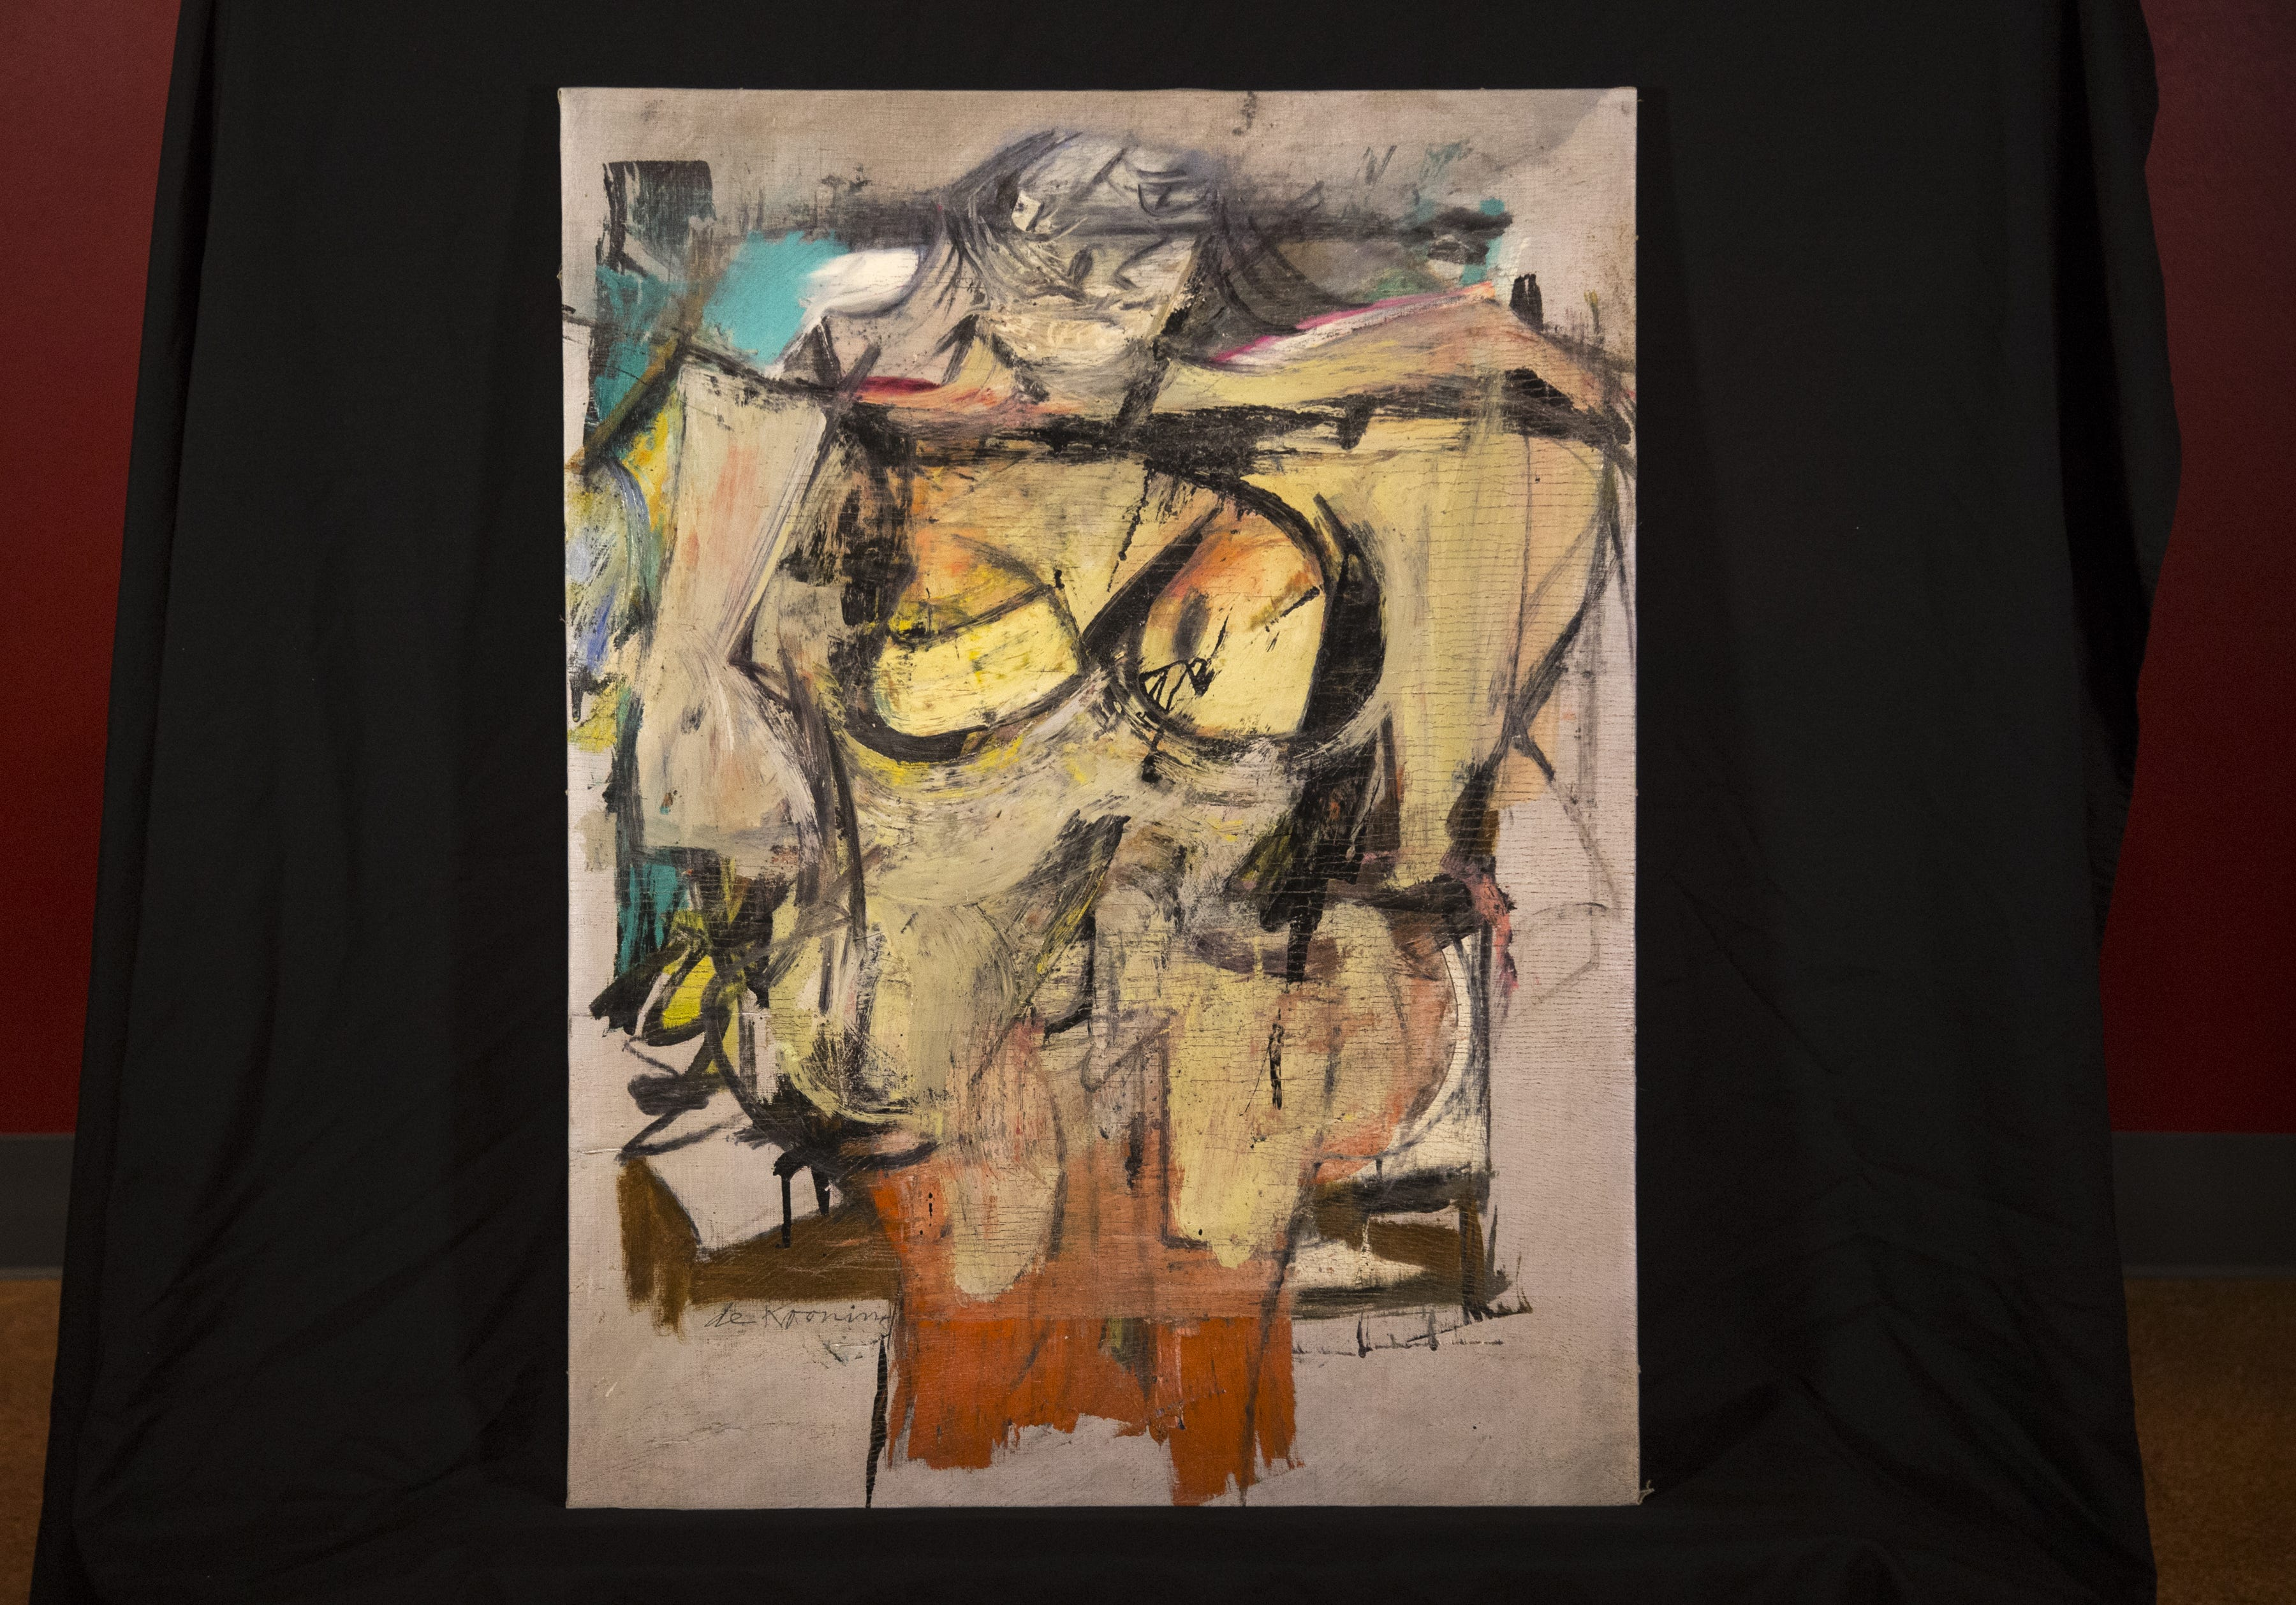 Who stole the $100M masterpiece? Clues emerge in year since recovery of Willem de Kooning painting